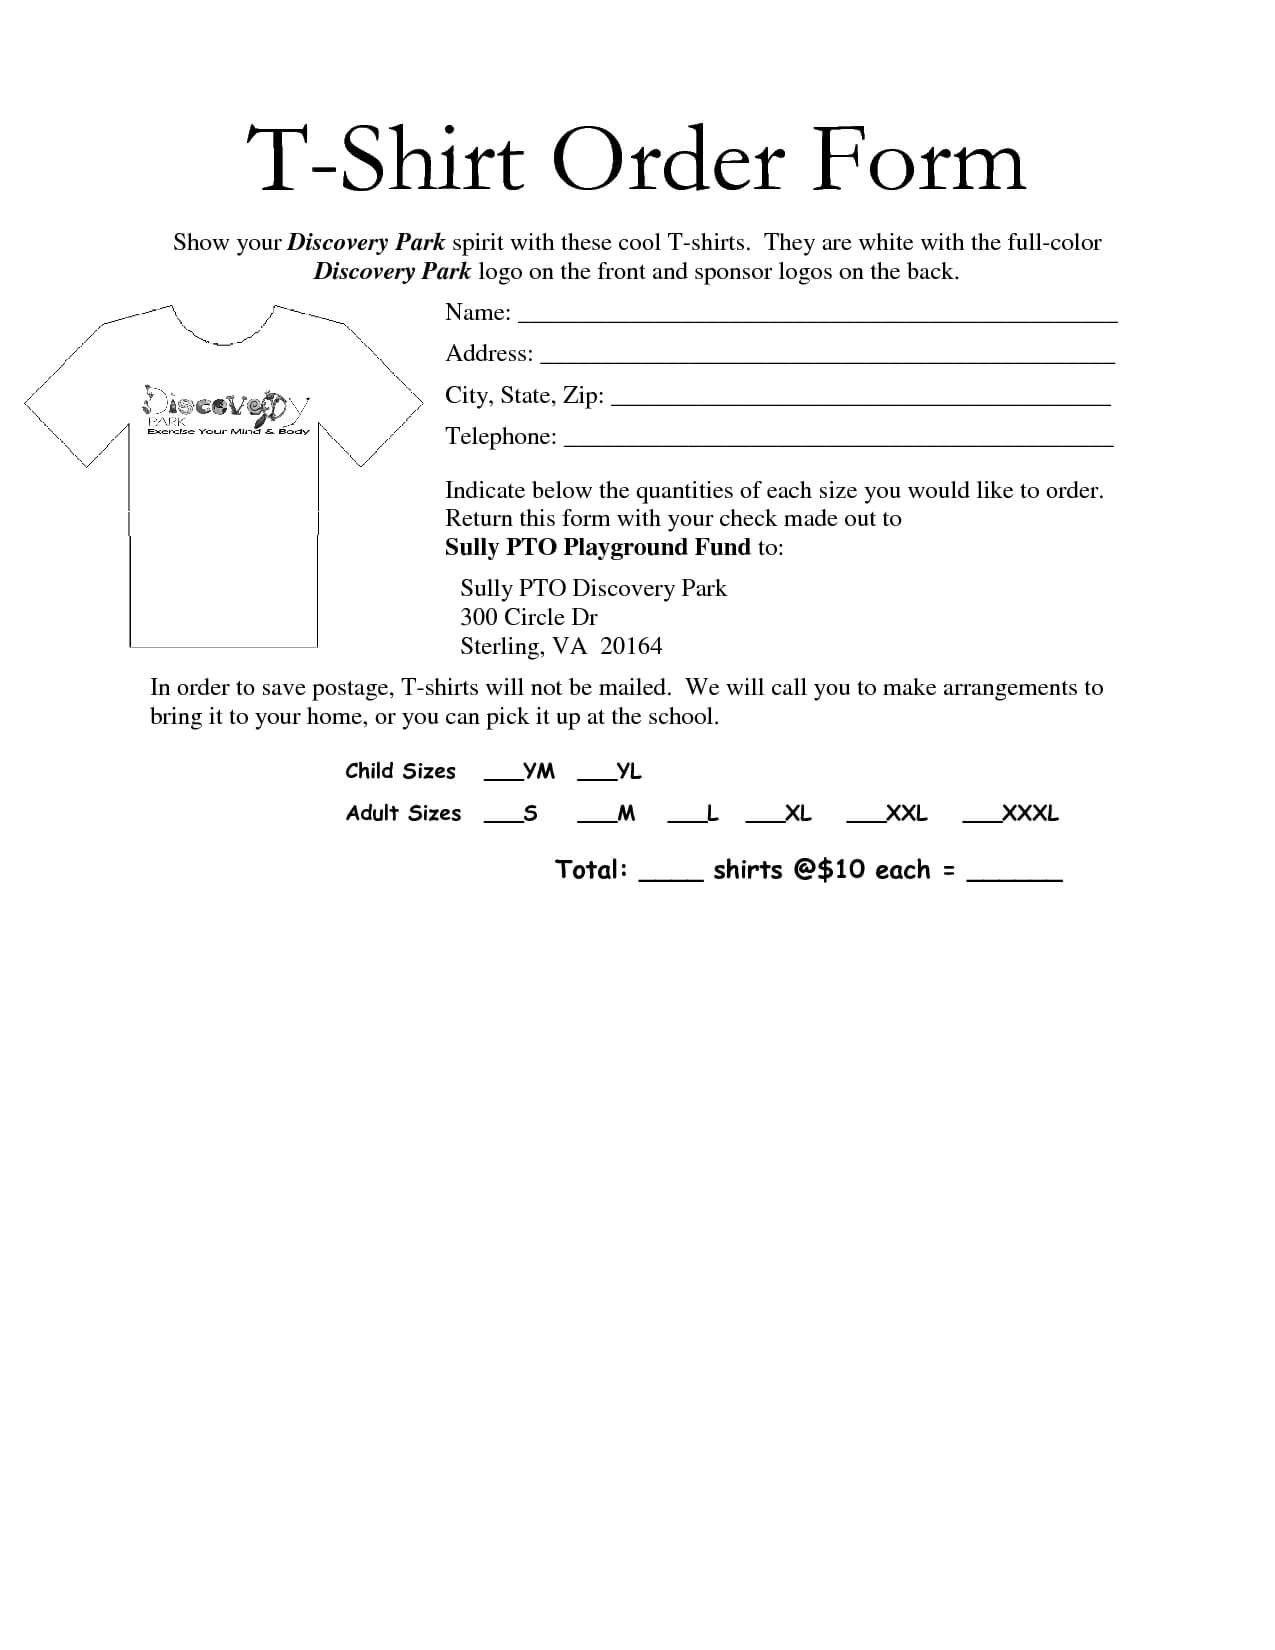 35 Awesome T-Shirt Order Form Template Free Images for Blank Sponsor Form Template Free